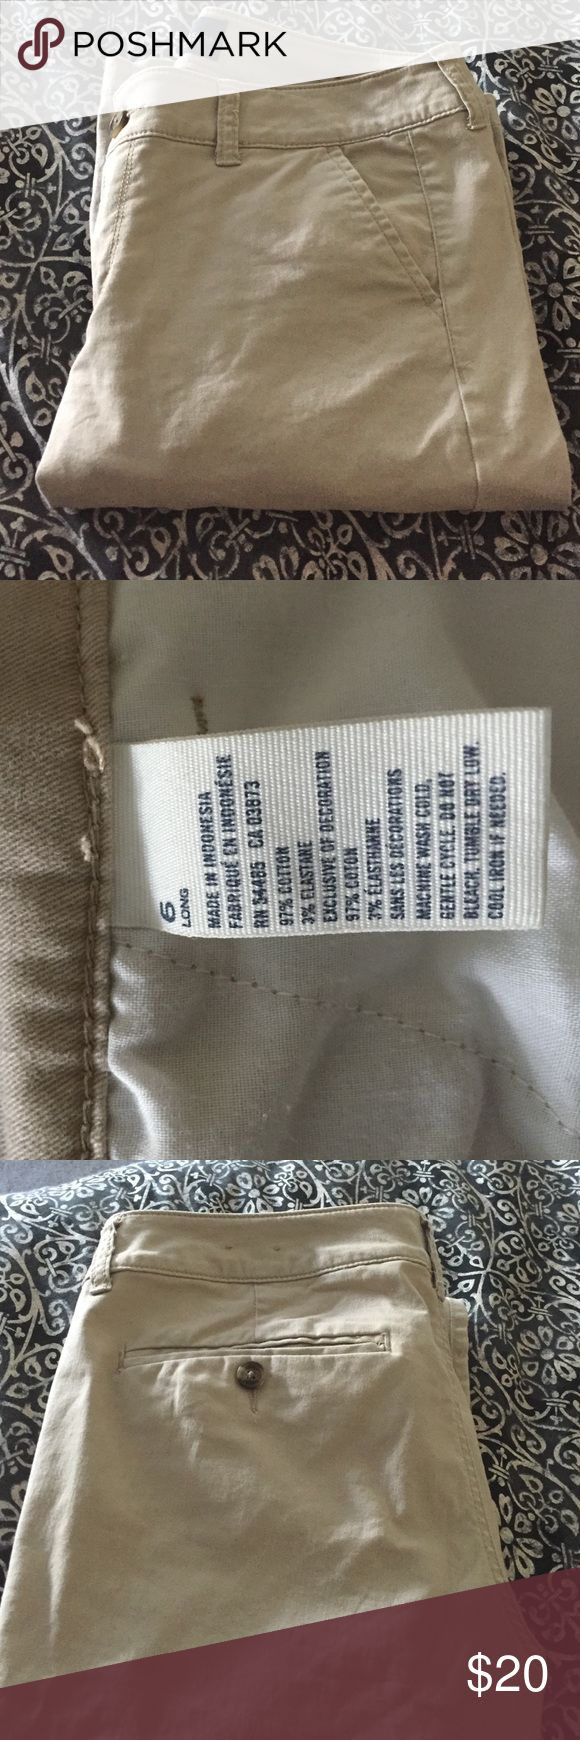 American Eagle size 6 long khaki pants These are new without tags size 6 long. khaki color American Eagle pants American Eagle Outfitters Pants Trousers